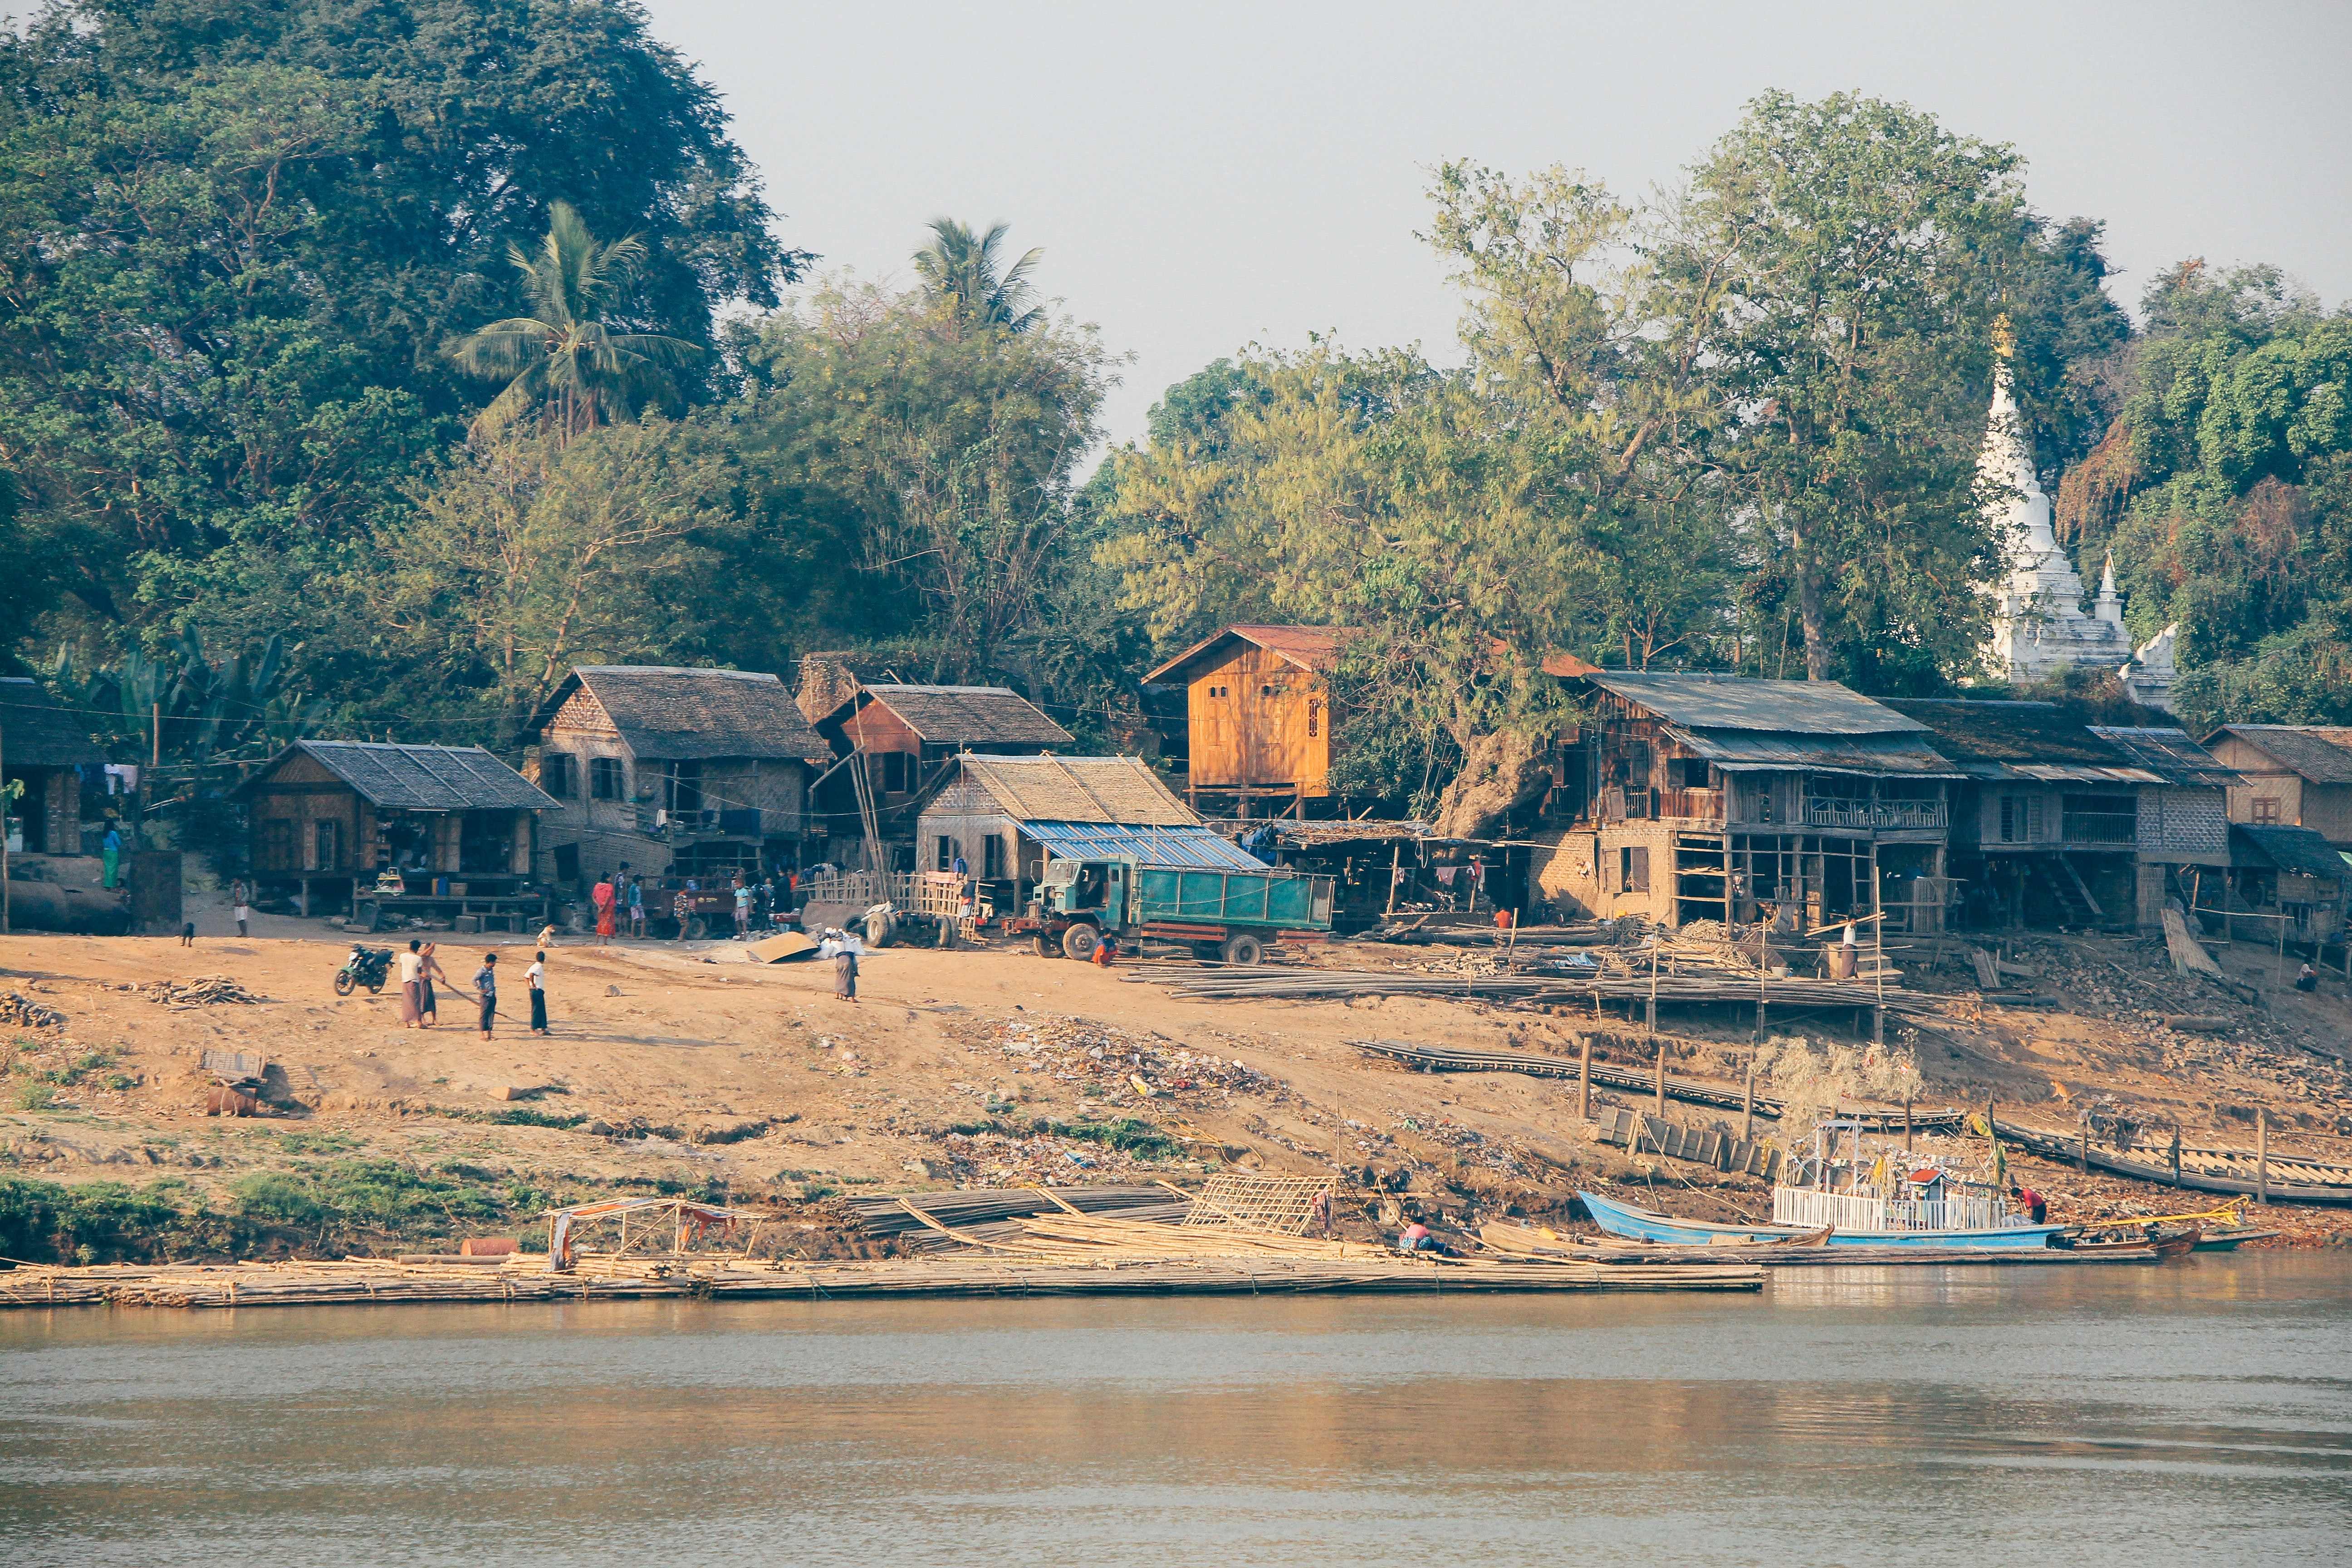 A small village with wooden houses, trees, few people and a river next to it in old began.